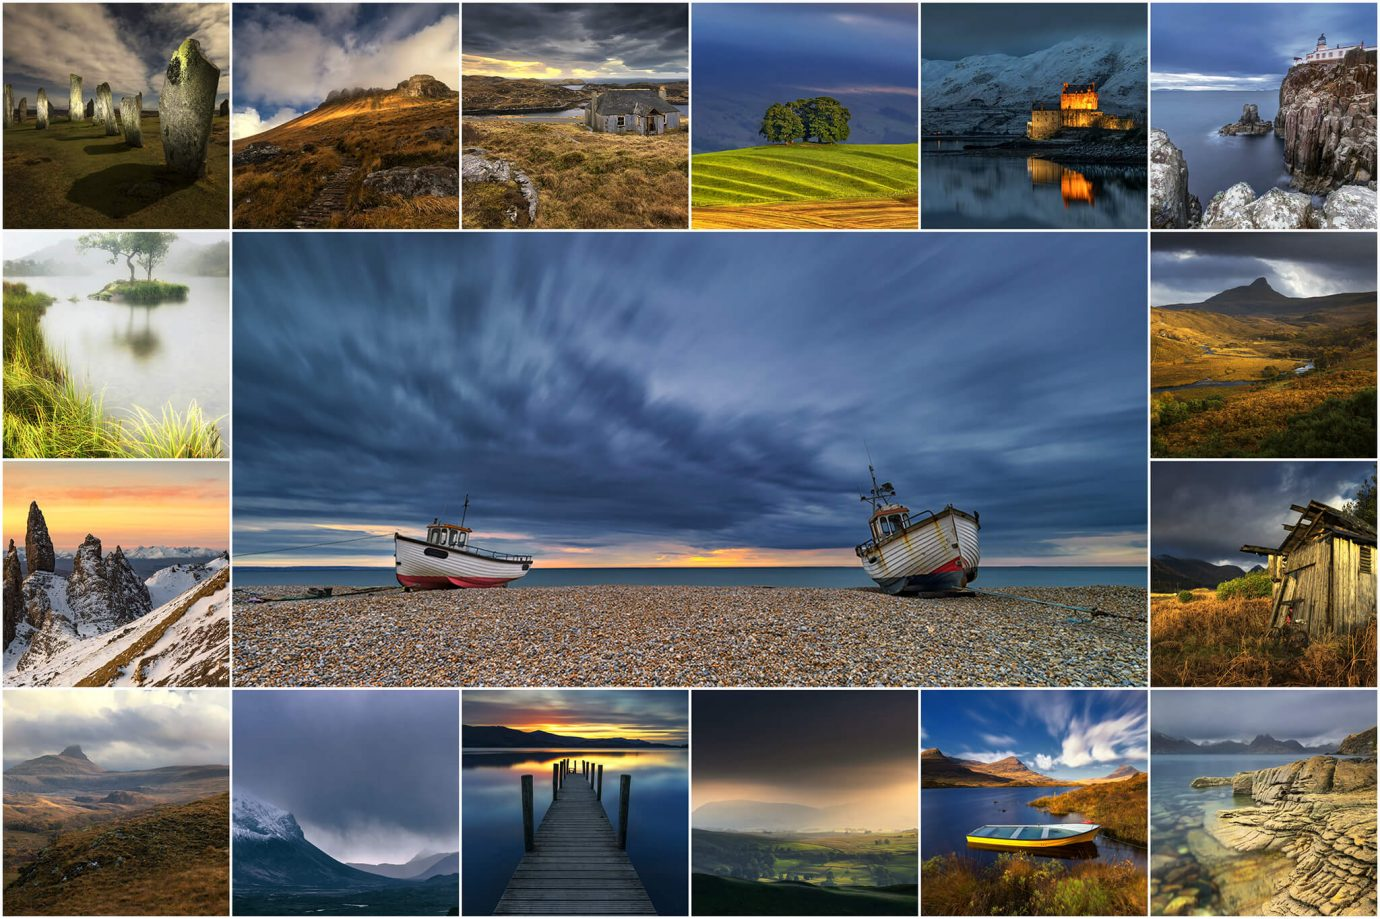 My 25 images entered into the 2018 Take-a-View Landscape Photographer of the Year Competition